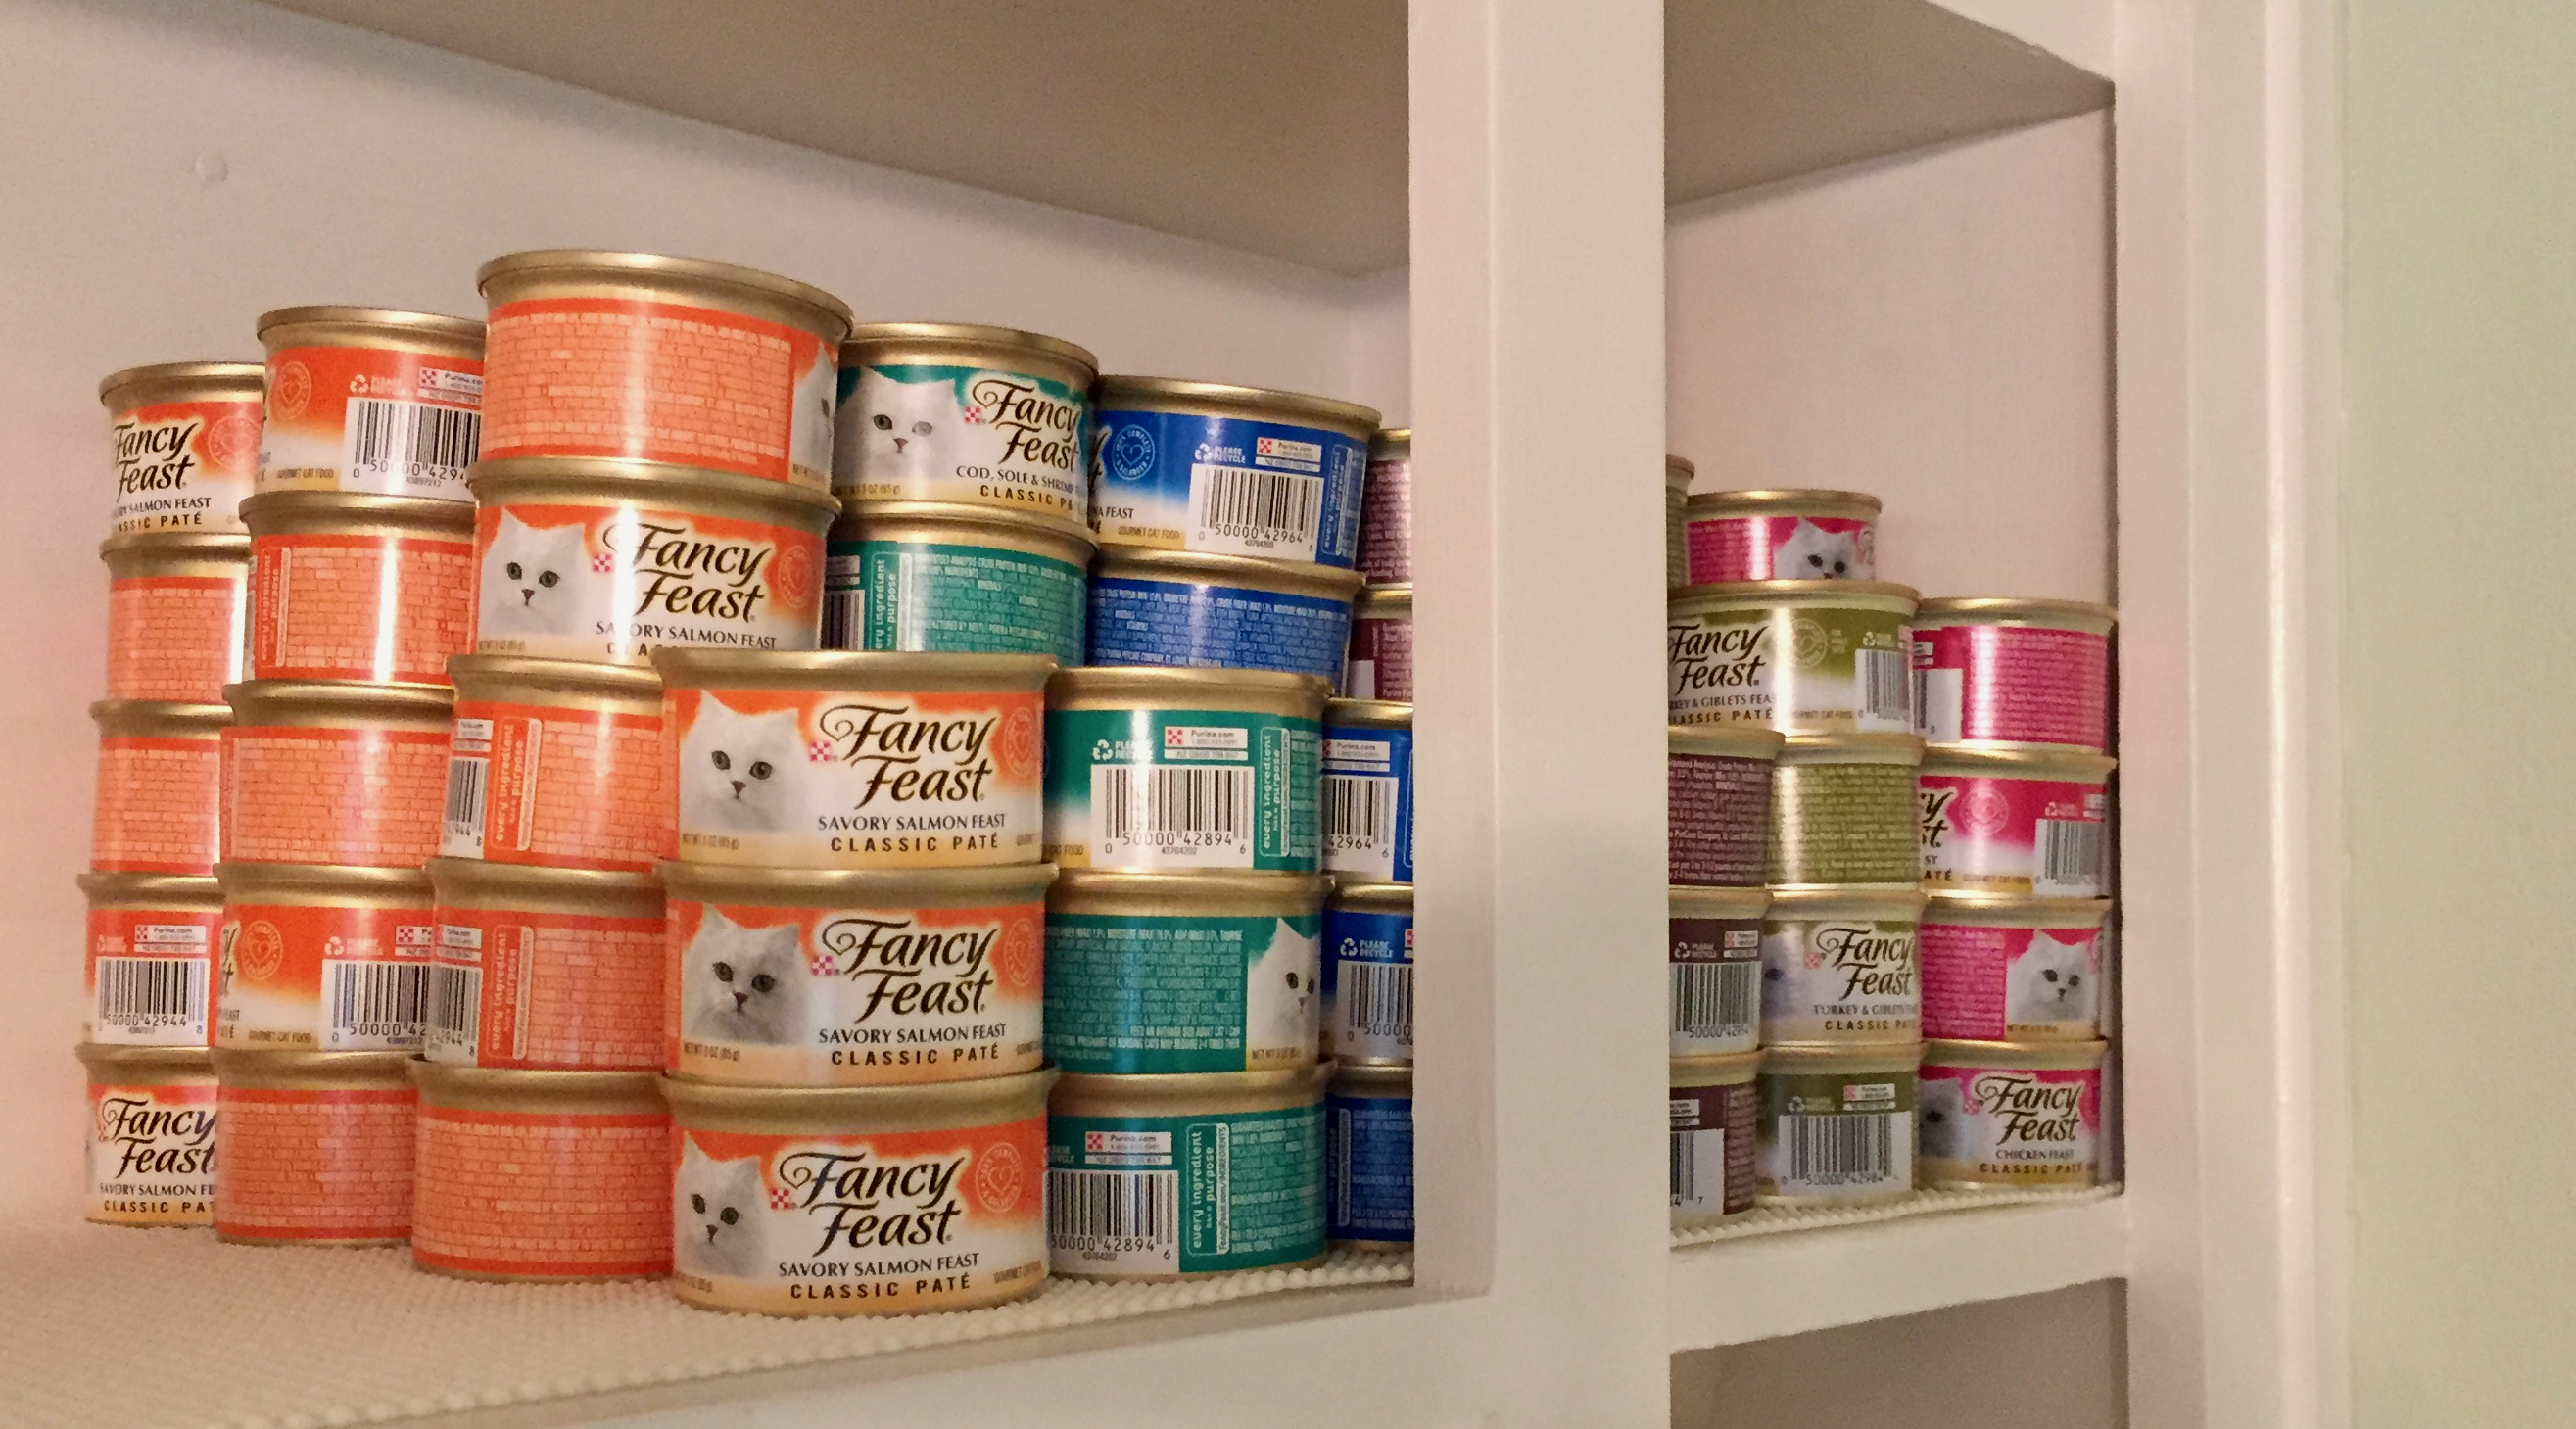 Cans of cat food.